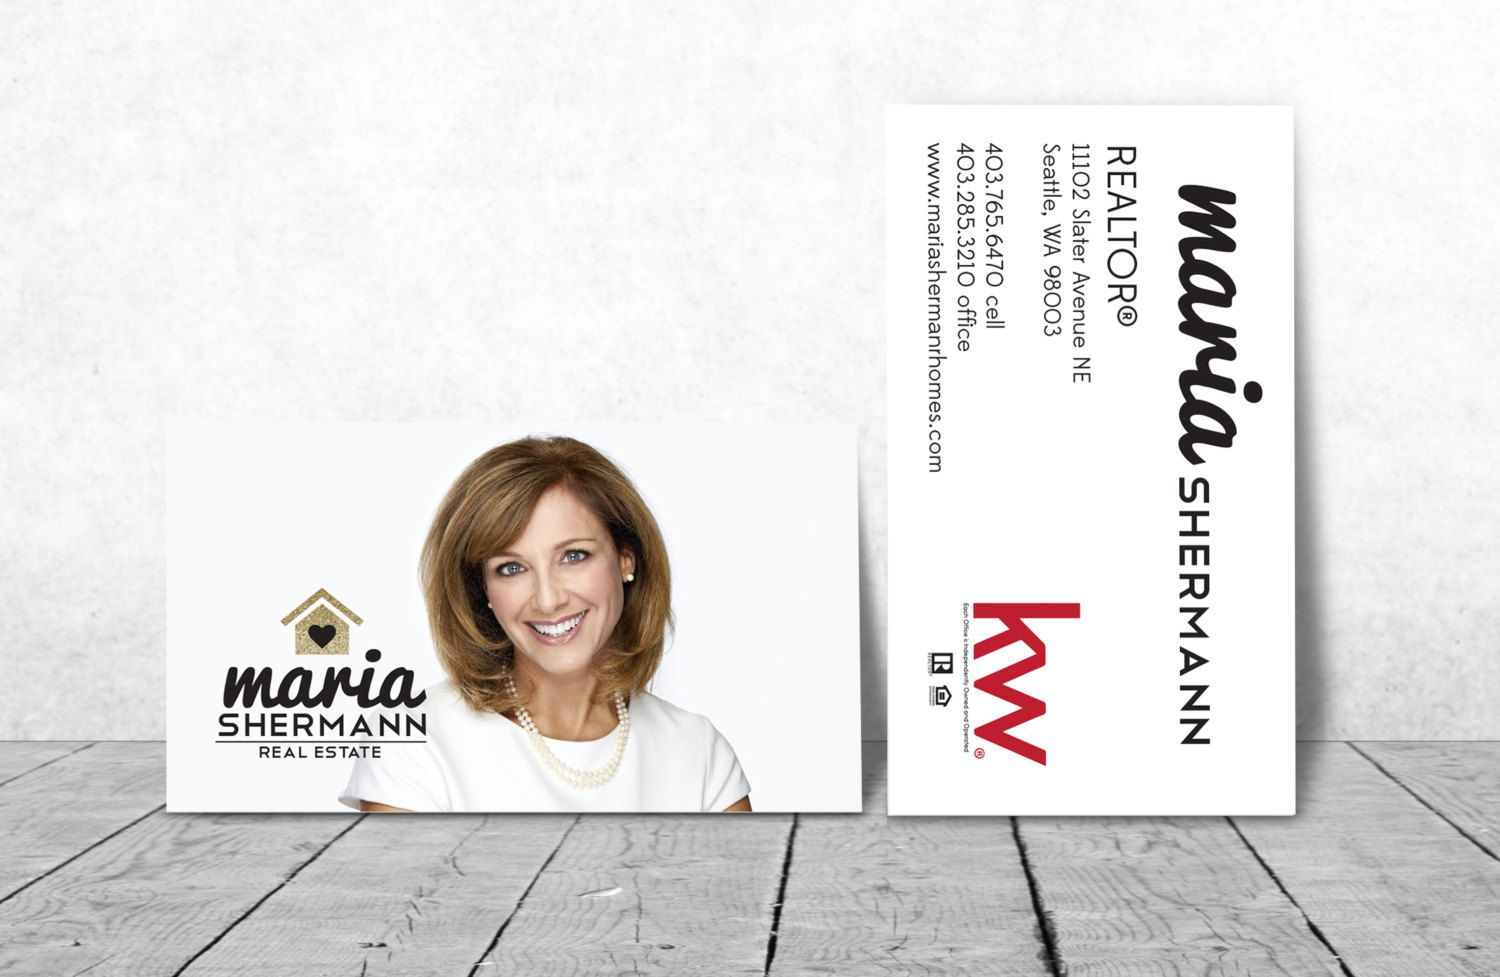 Real estate Business Cards GOLD house simple card Modern Realtor Keller Williams, color both sides FREE UPS shipping- century 21 re-max by Ladyluckpr on Etsy